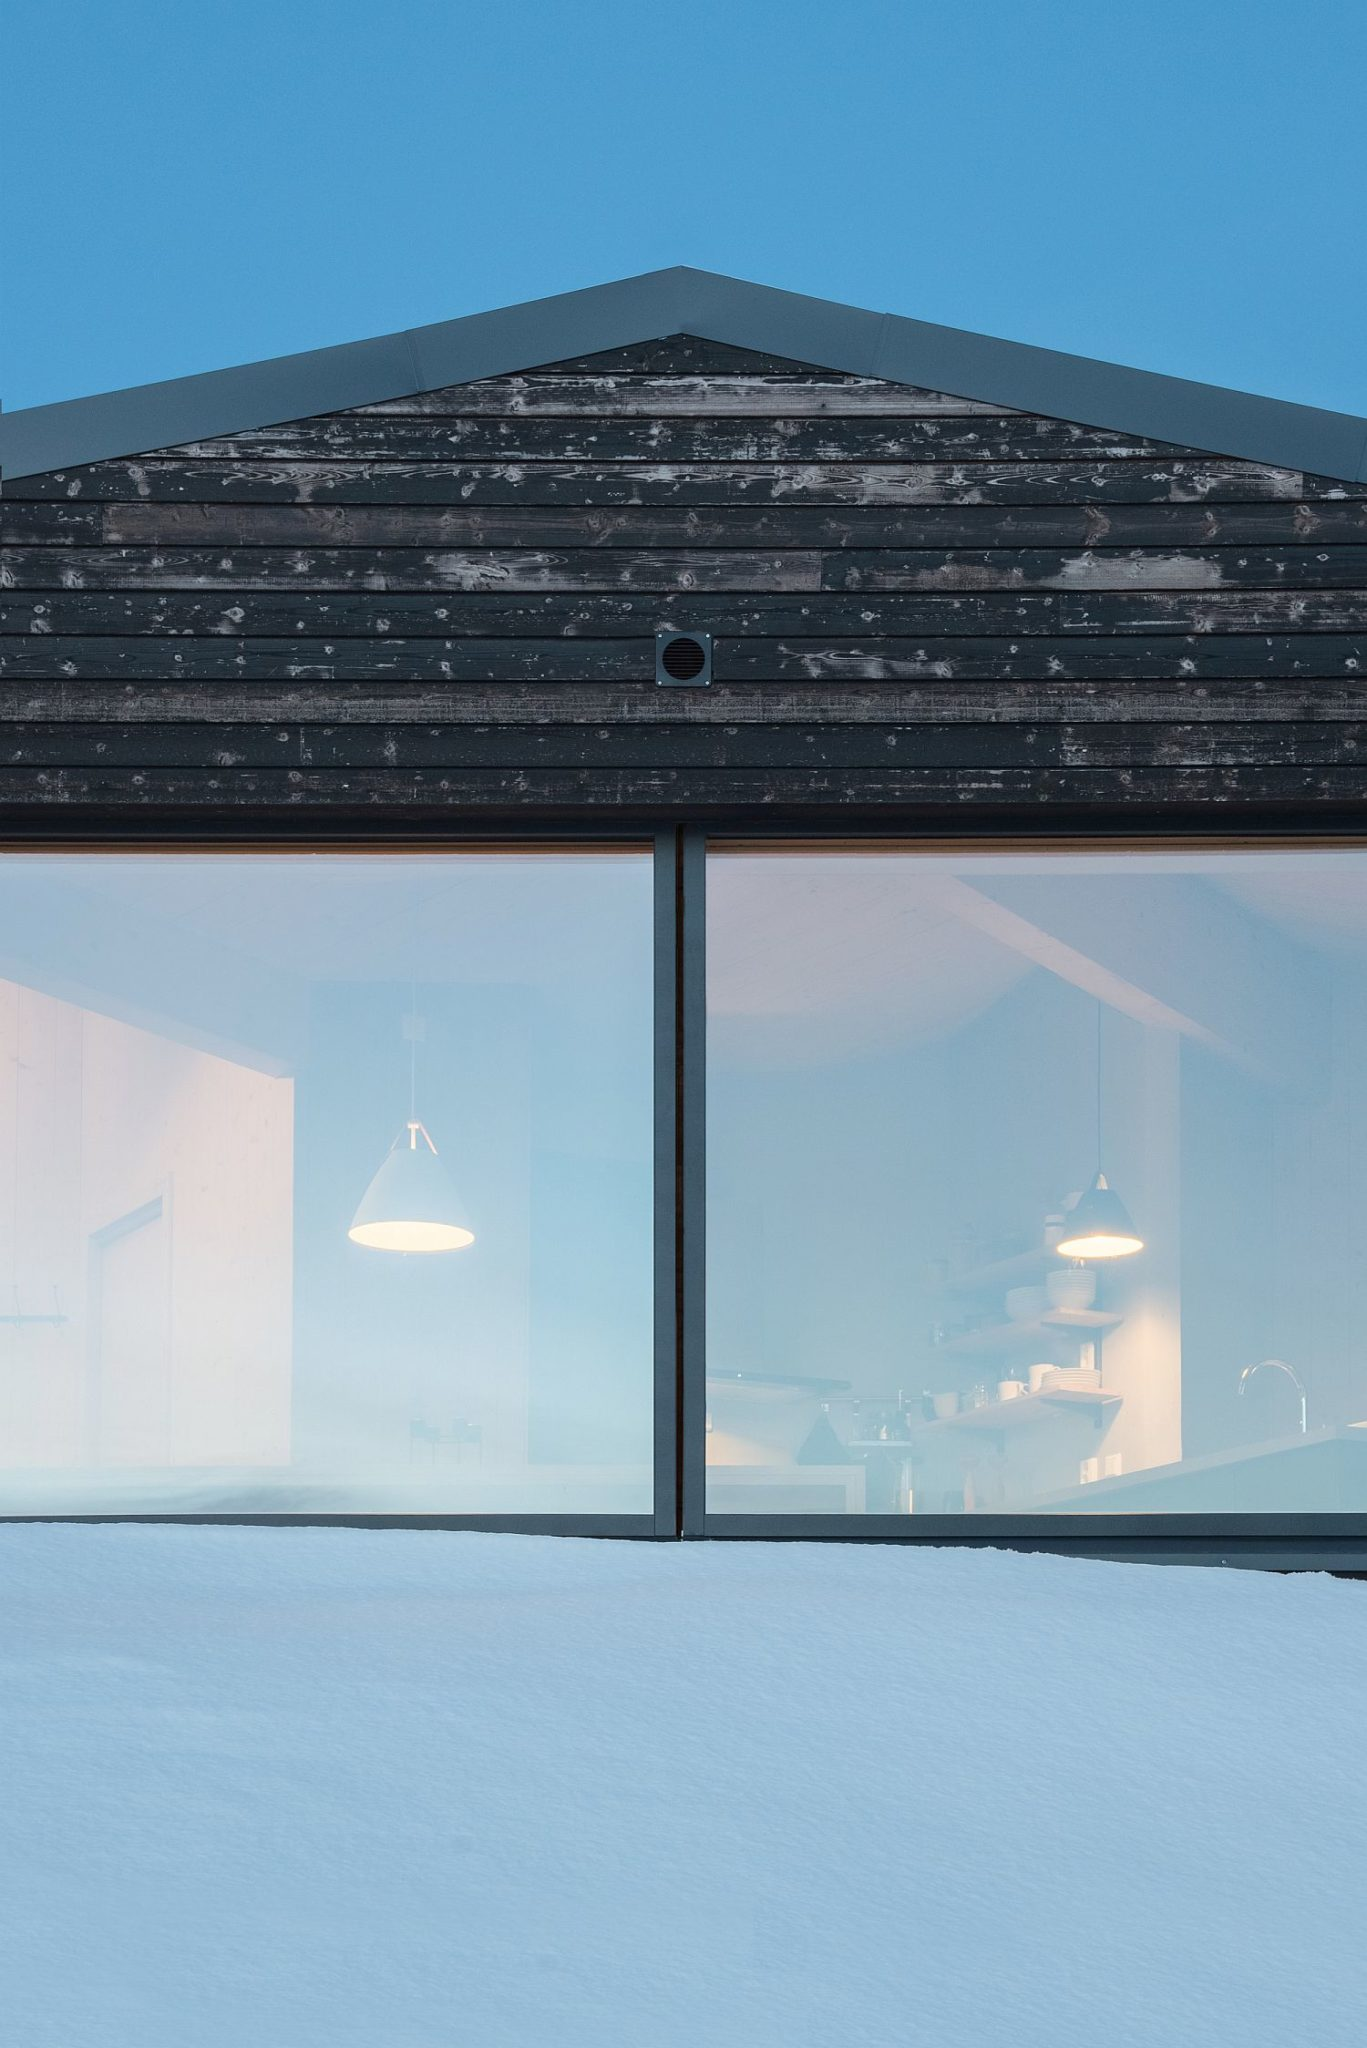 A look into the cabin from the snow-clad slopes around it